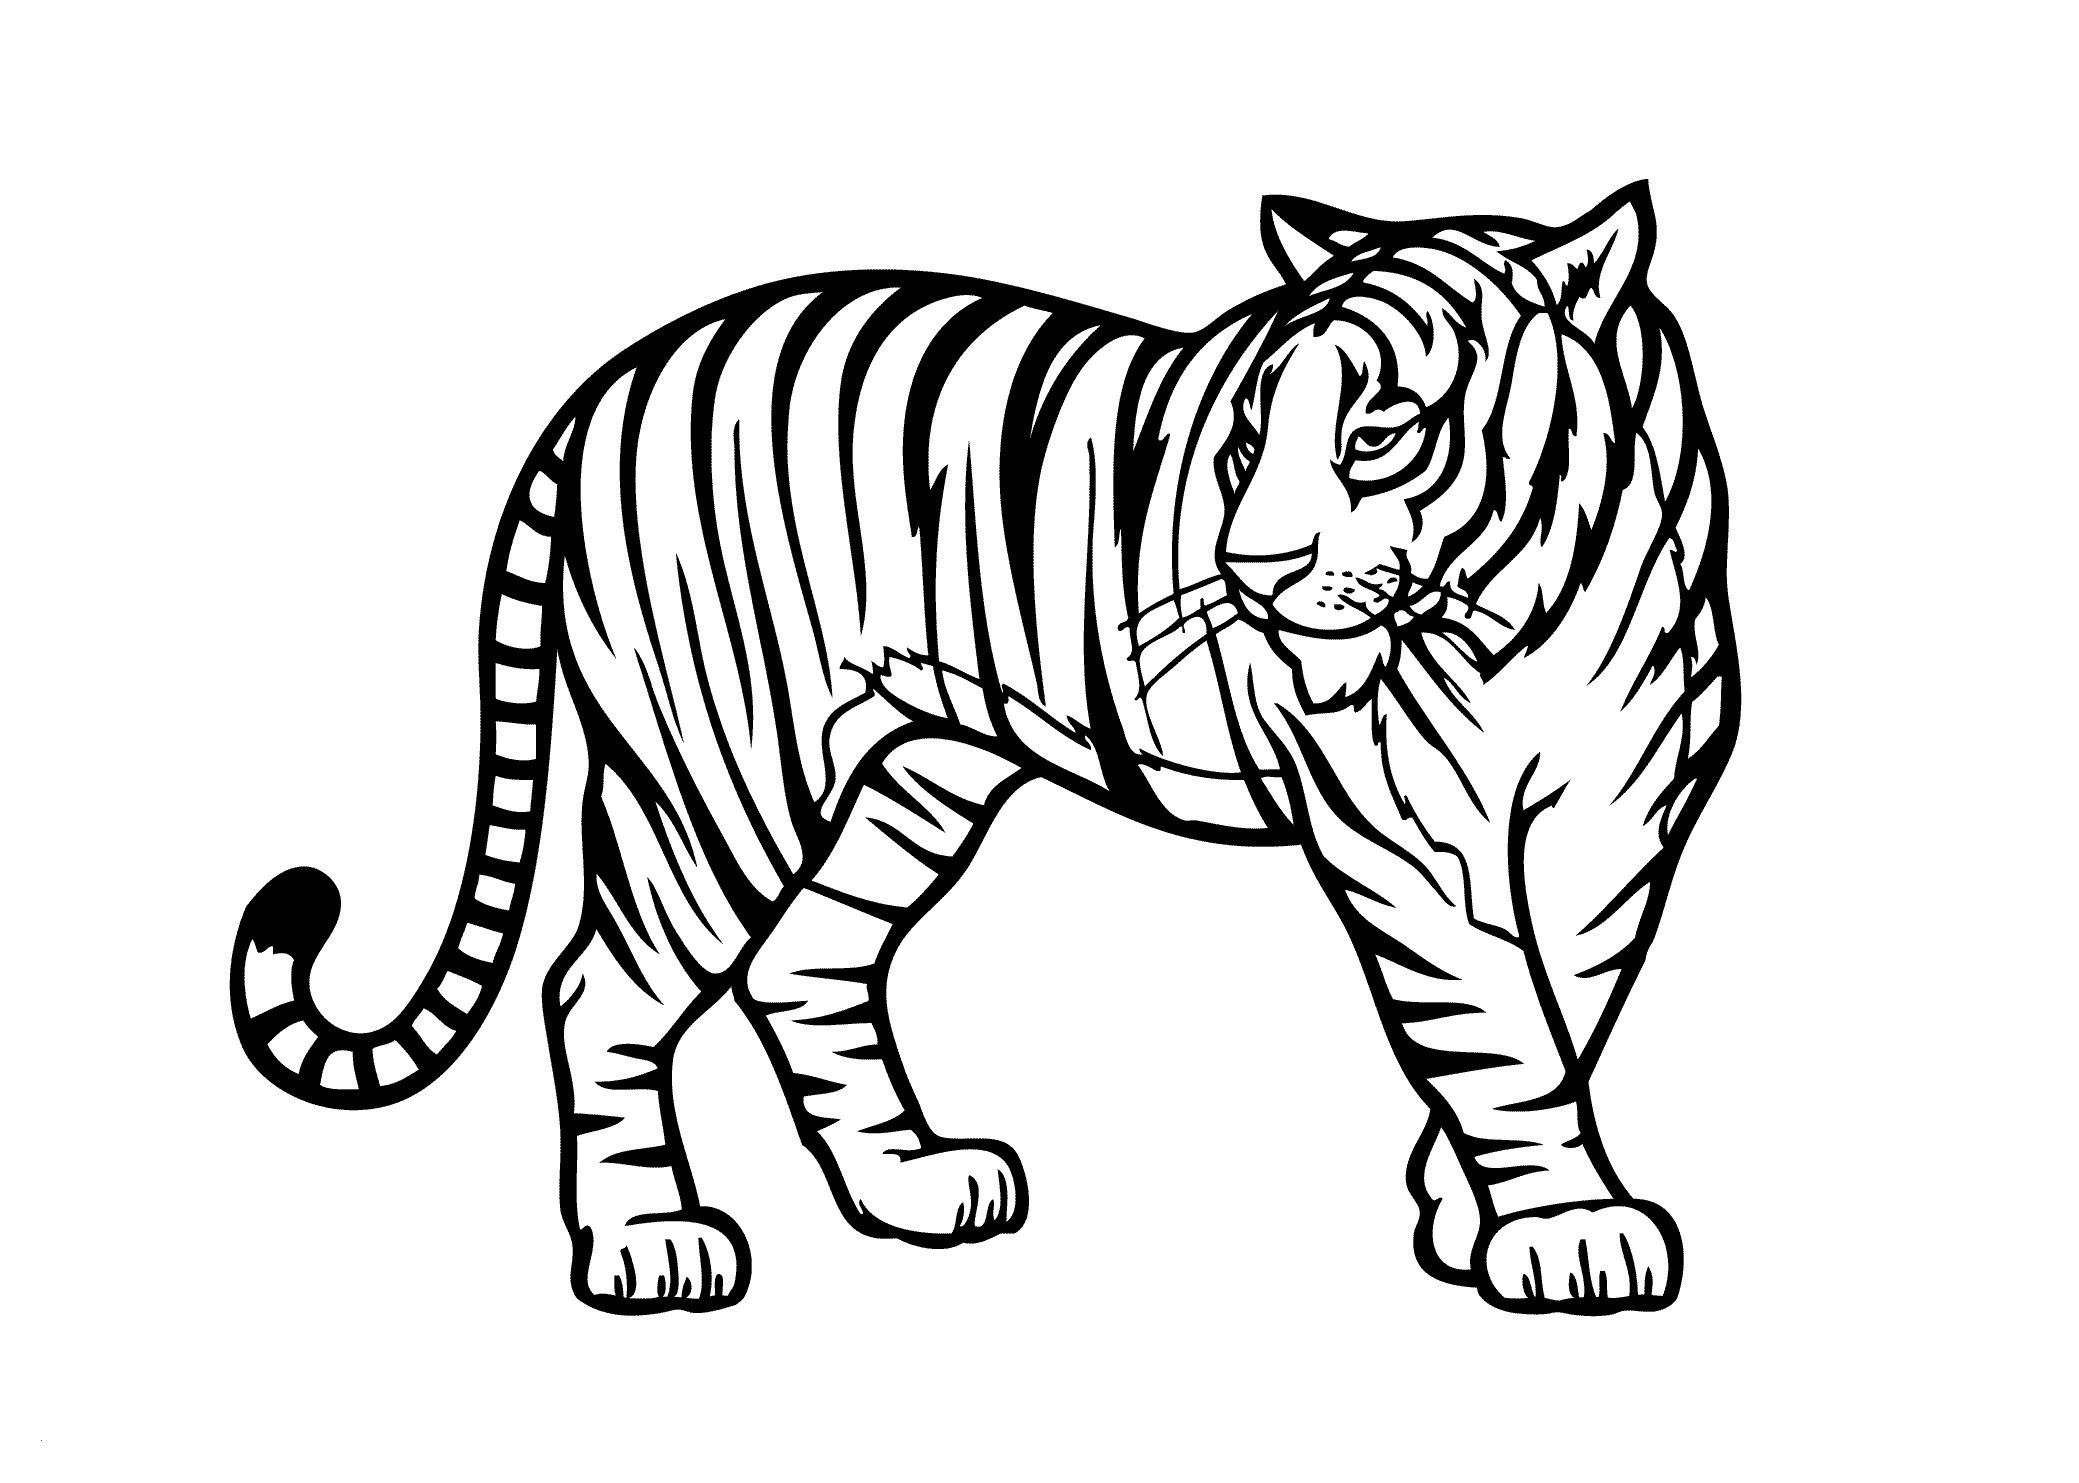 Free Printable Wild Animal Coloring Pages Through The Thousands Of Images On The Coloring Pictures Of Animals Zoo Animal Coloring Pages Animal Coloring Books